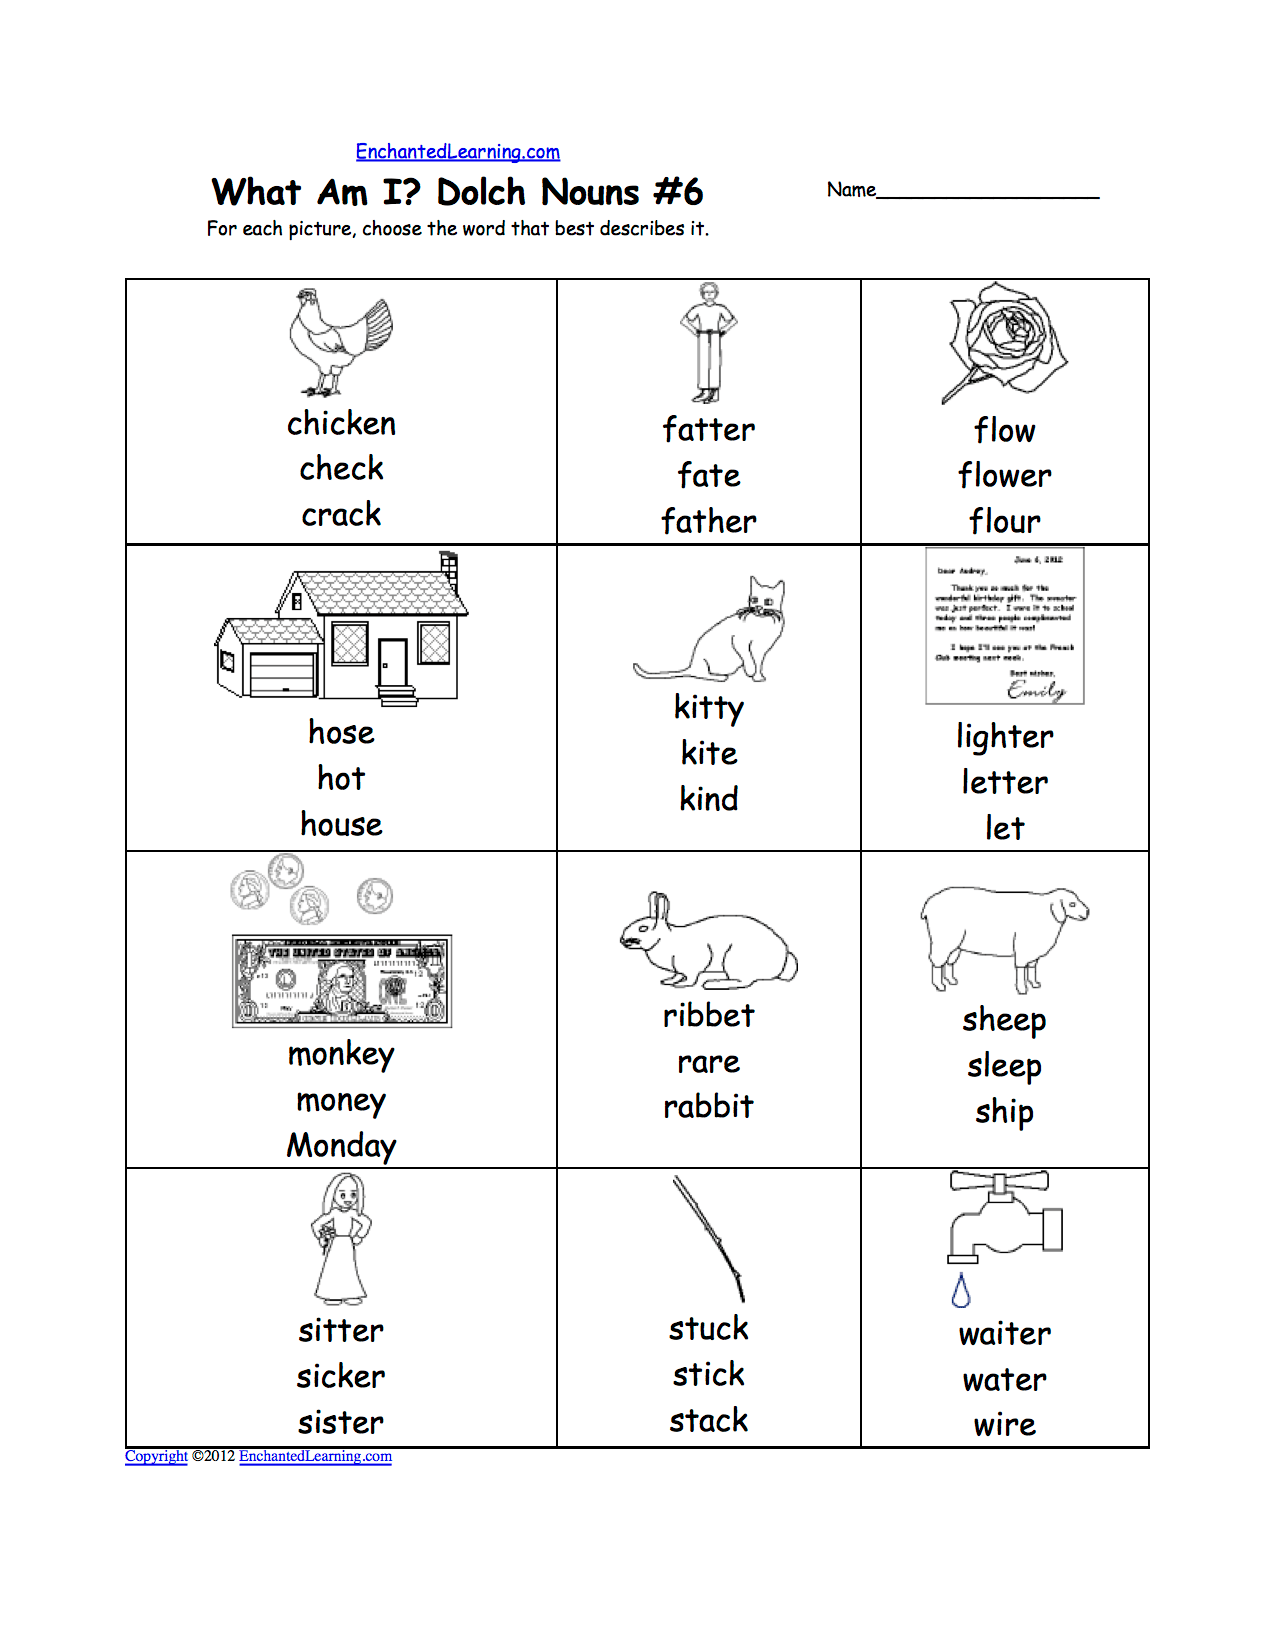 Dolch Nouns Multiple Choice Spelling Words At